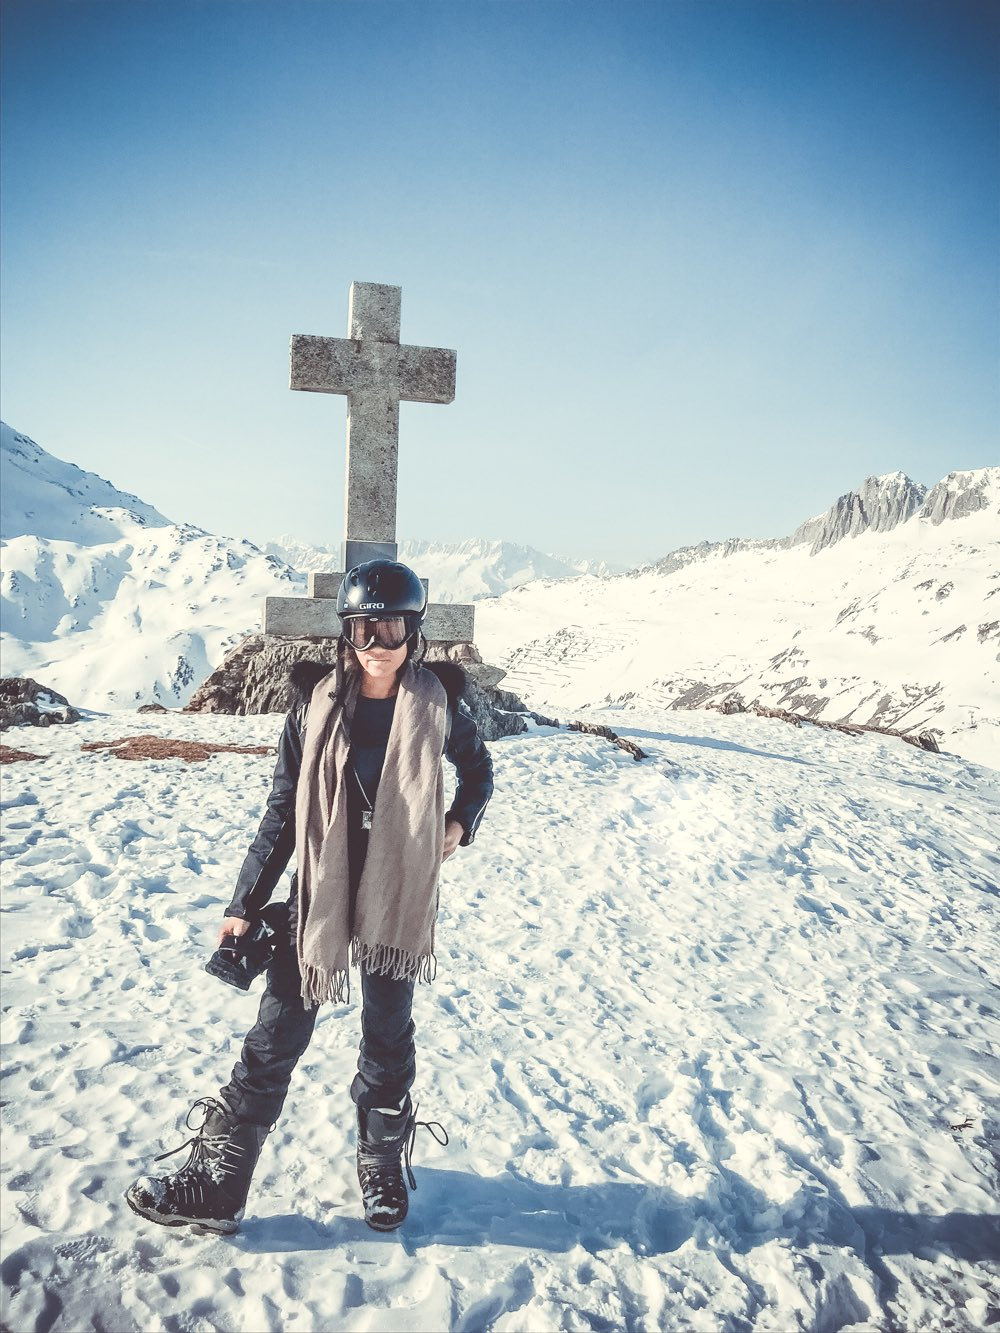 Skiing in switzerland, swiss alps, winter sport